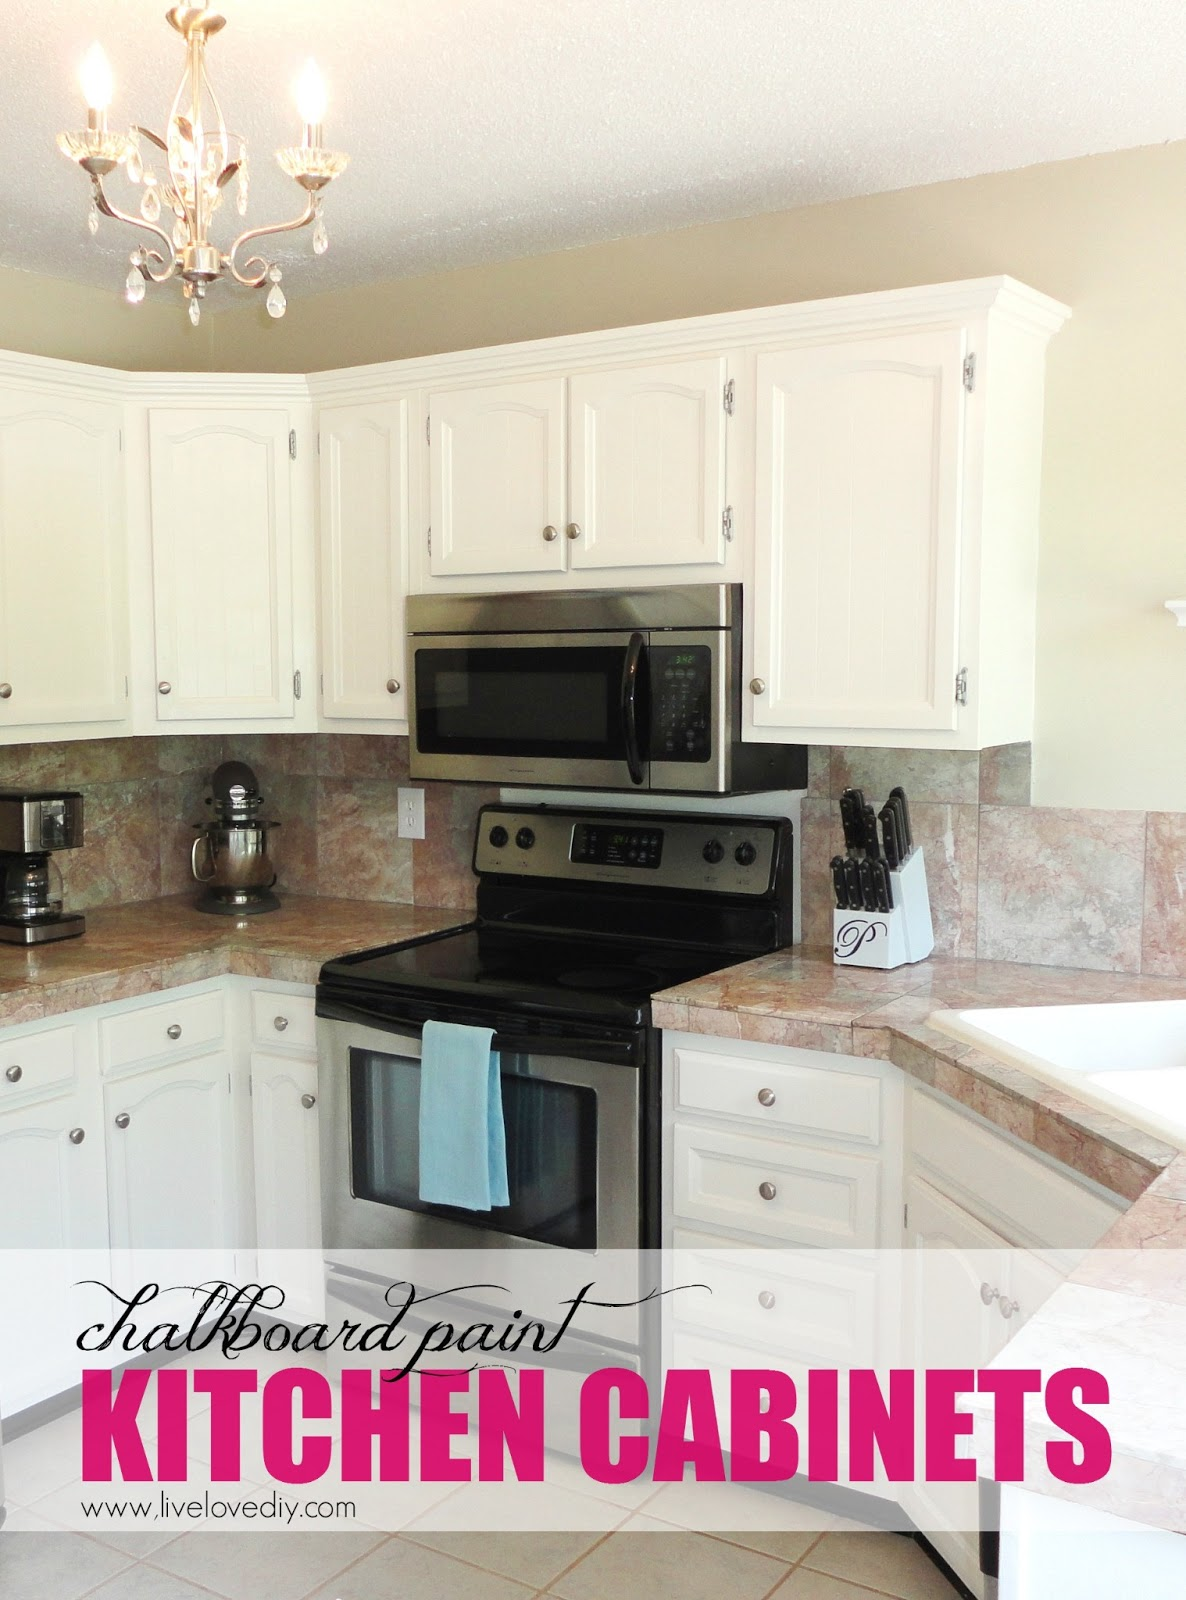 kitchen cabinet chalk paint makeover repaint kitchen cabinets The Chalkboard Paint Kitchen Cabinet Makeover